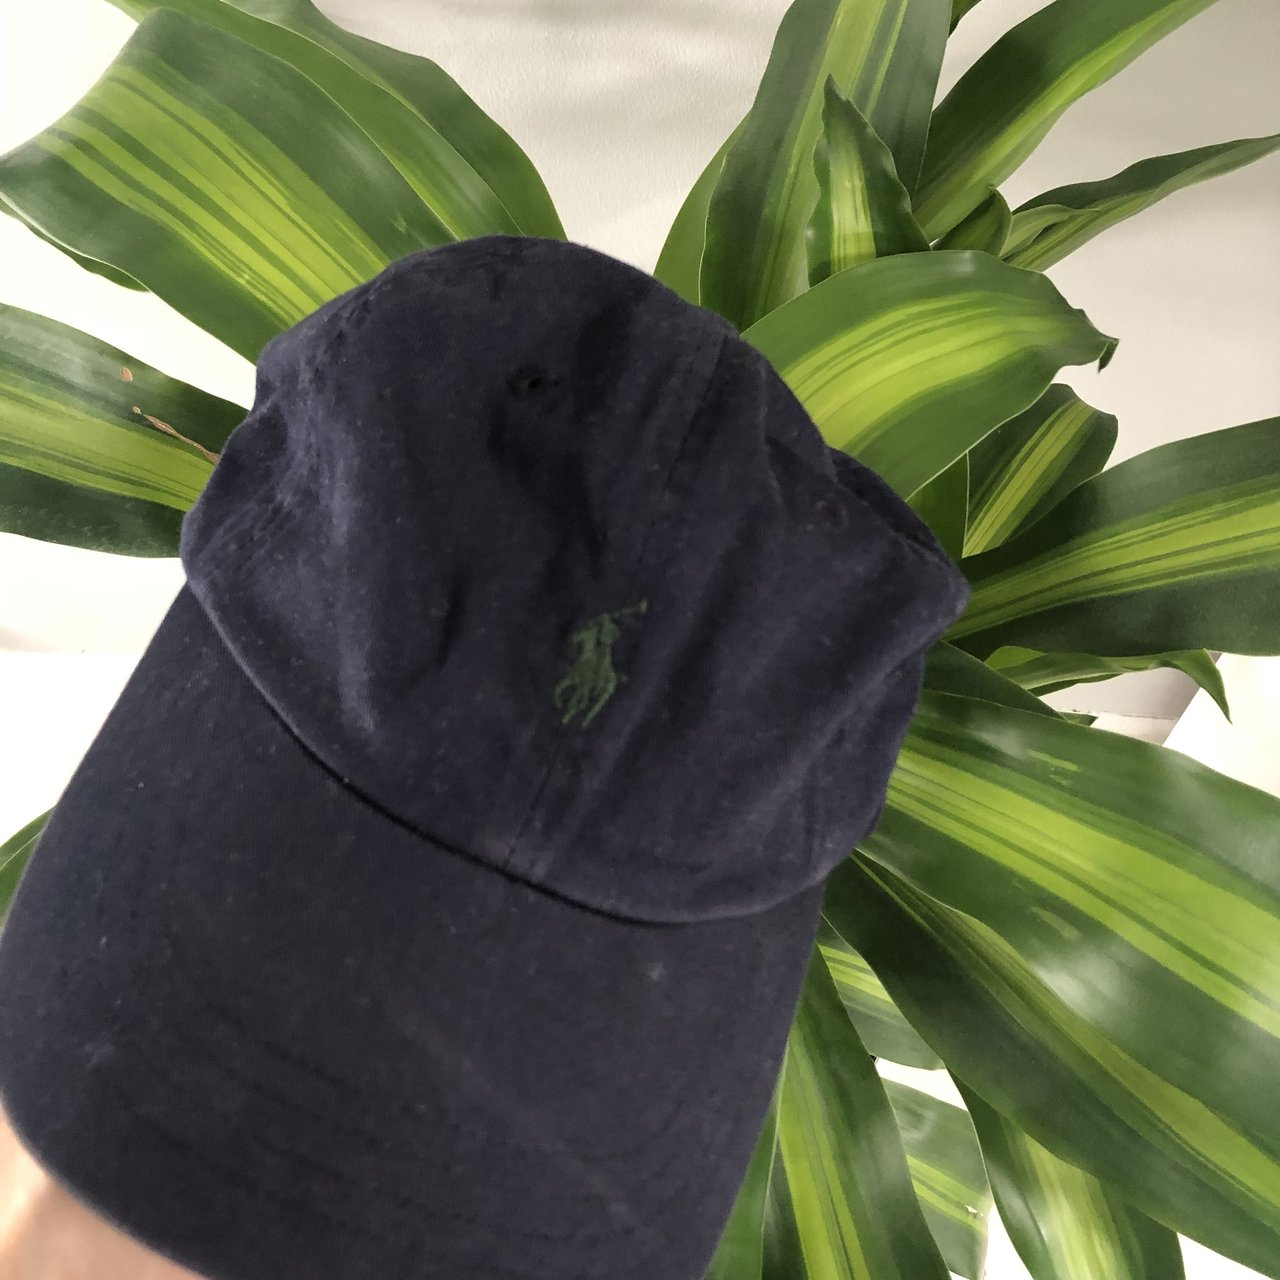 5a7ae3e7321 Vintage Unisex Ralph Lauren navy hat with green accents 💥 - Depop